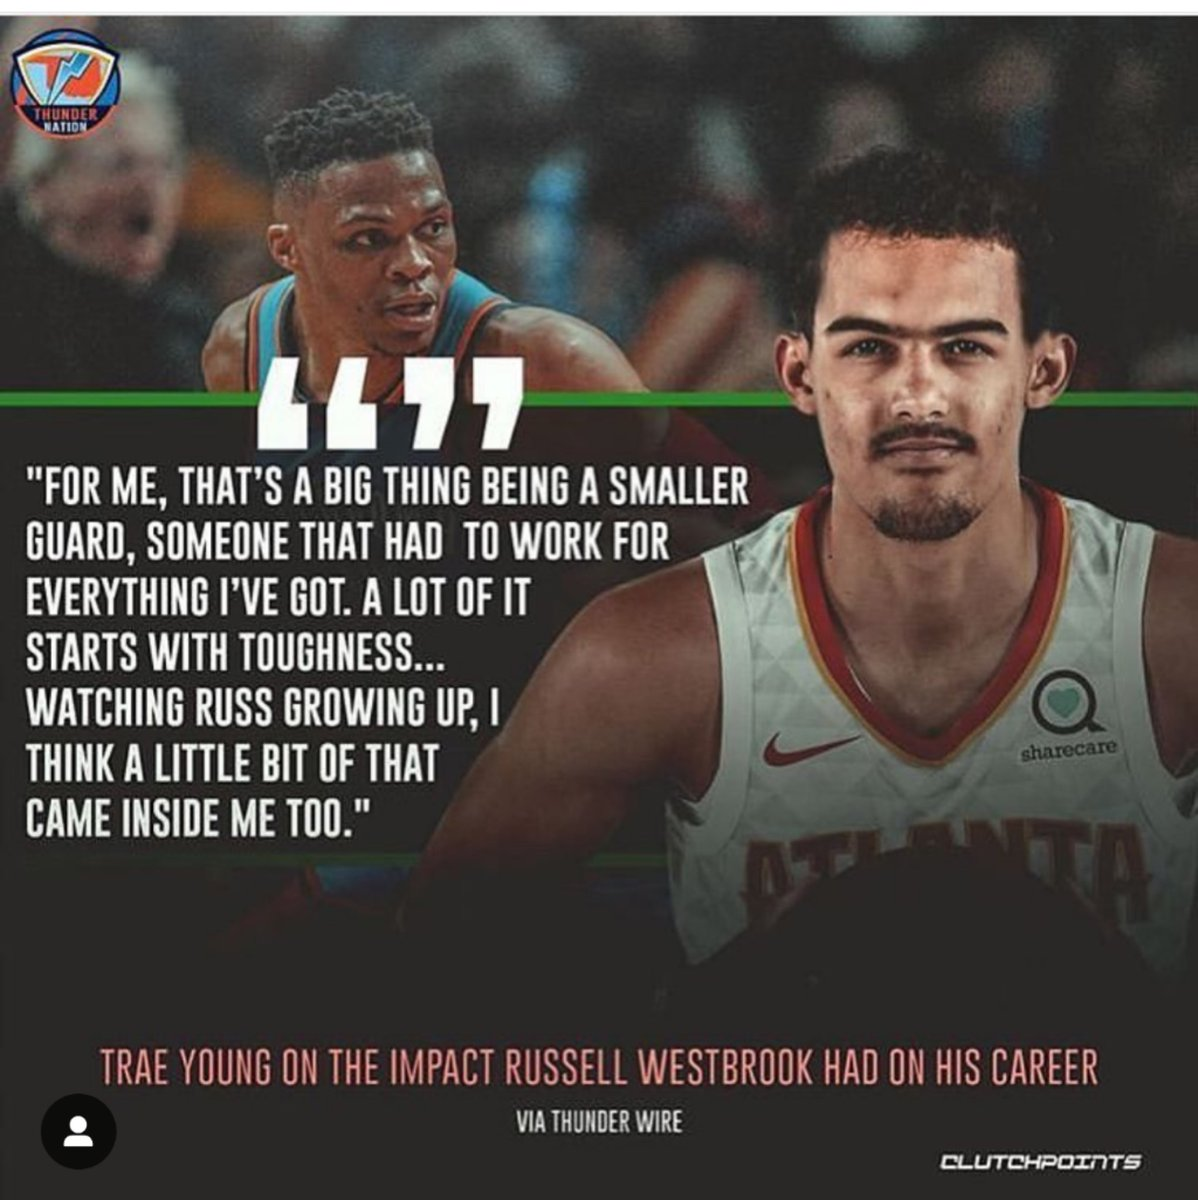 What do you know, another person who is influenced by Russ. Add Trae to the list.